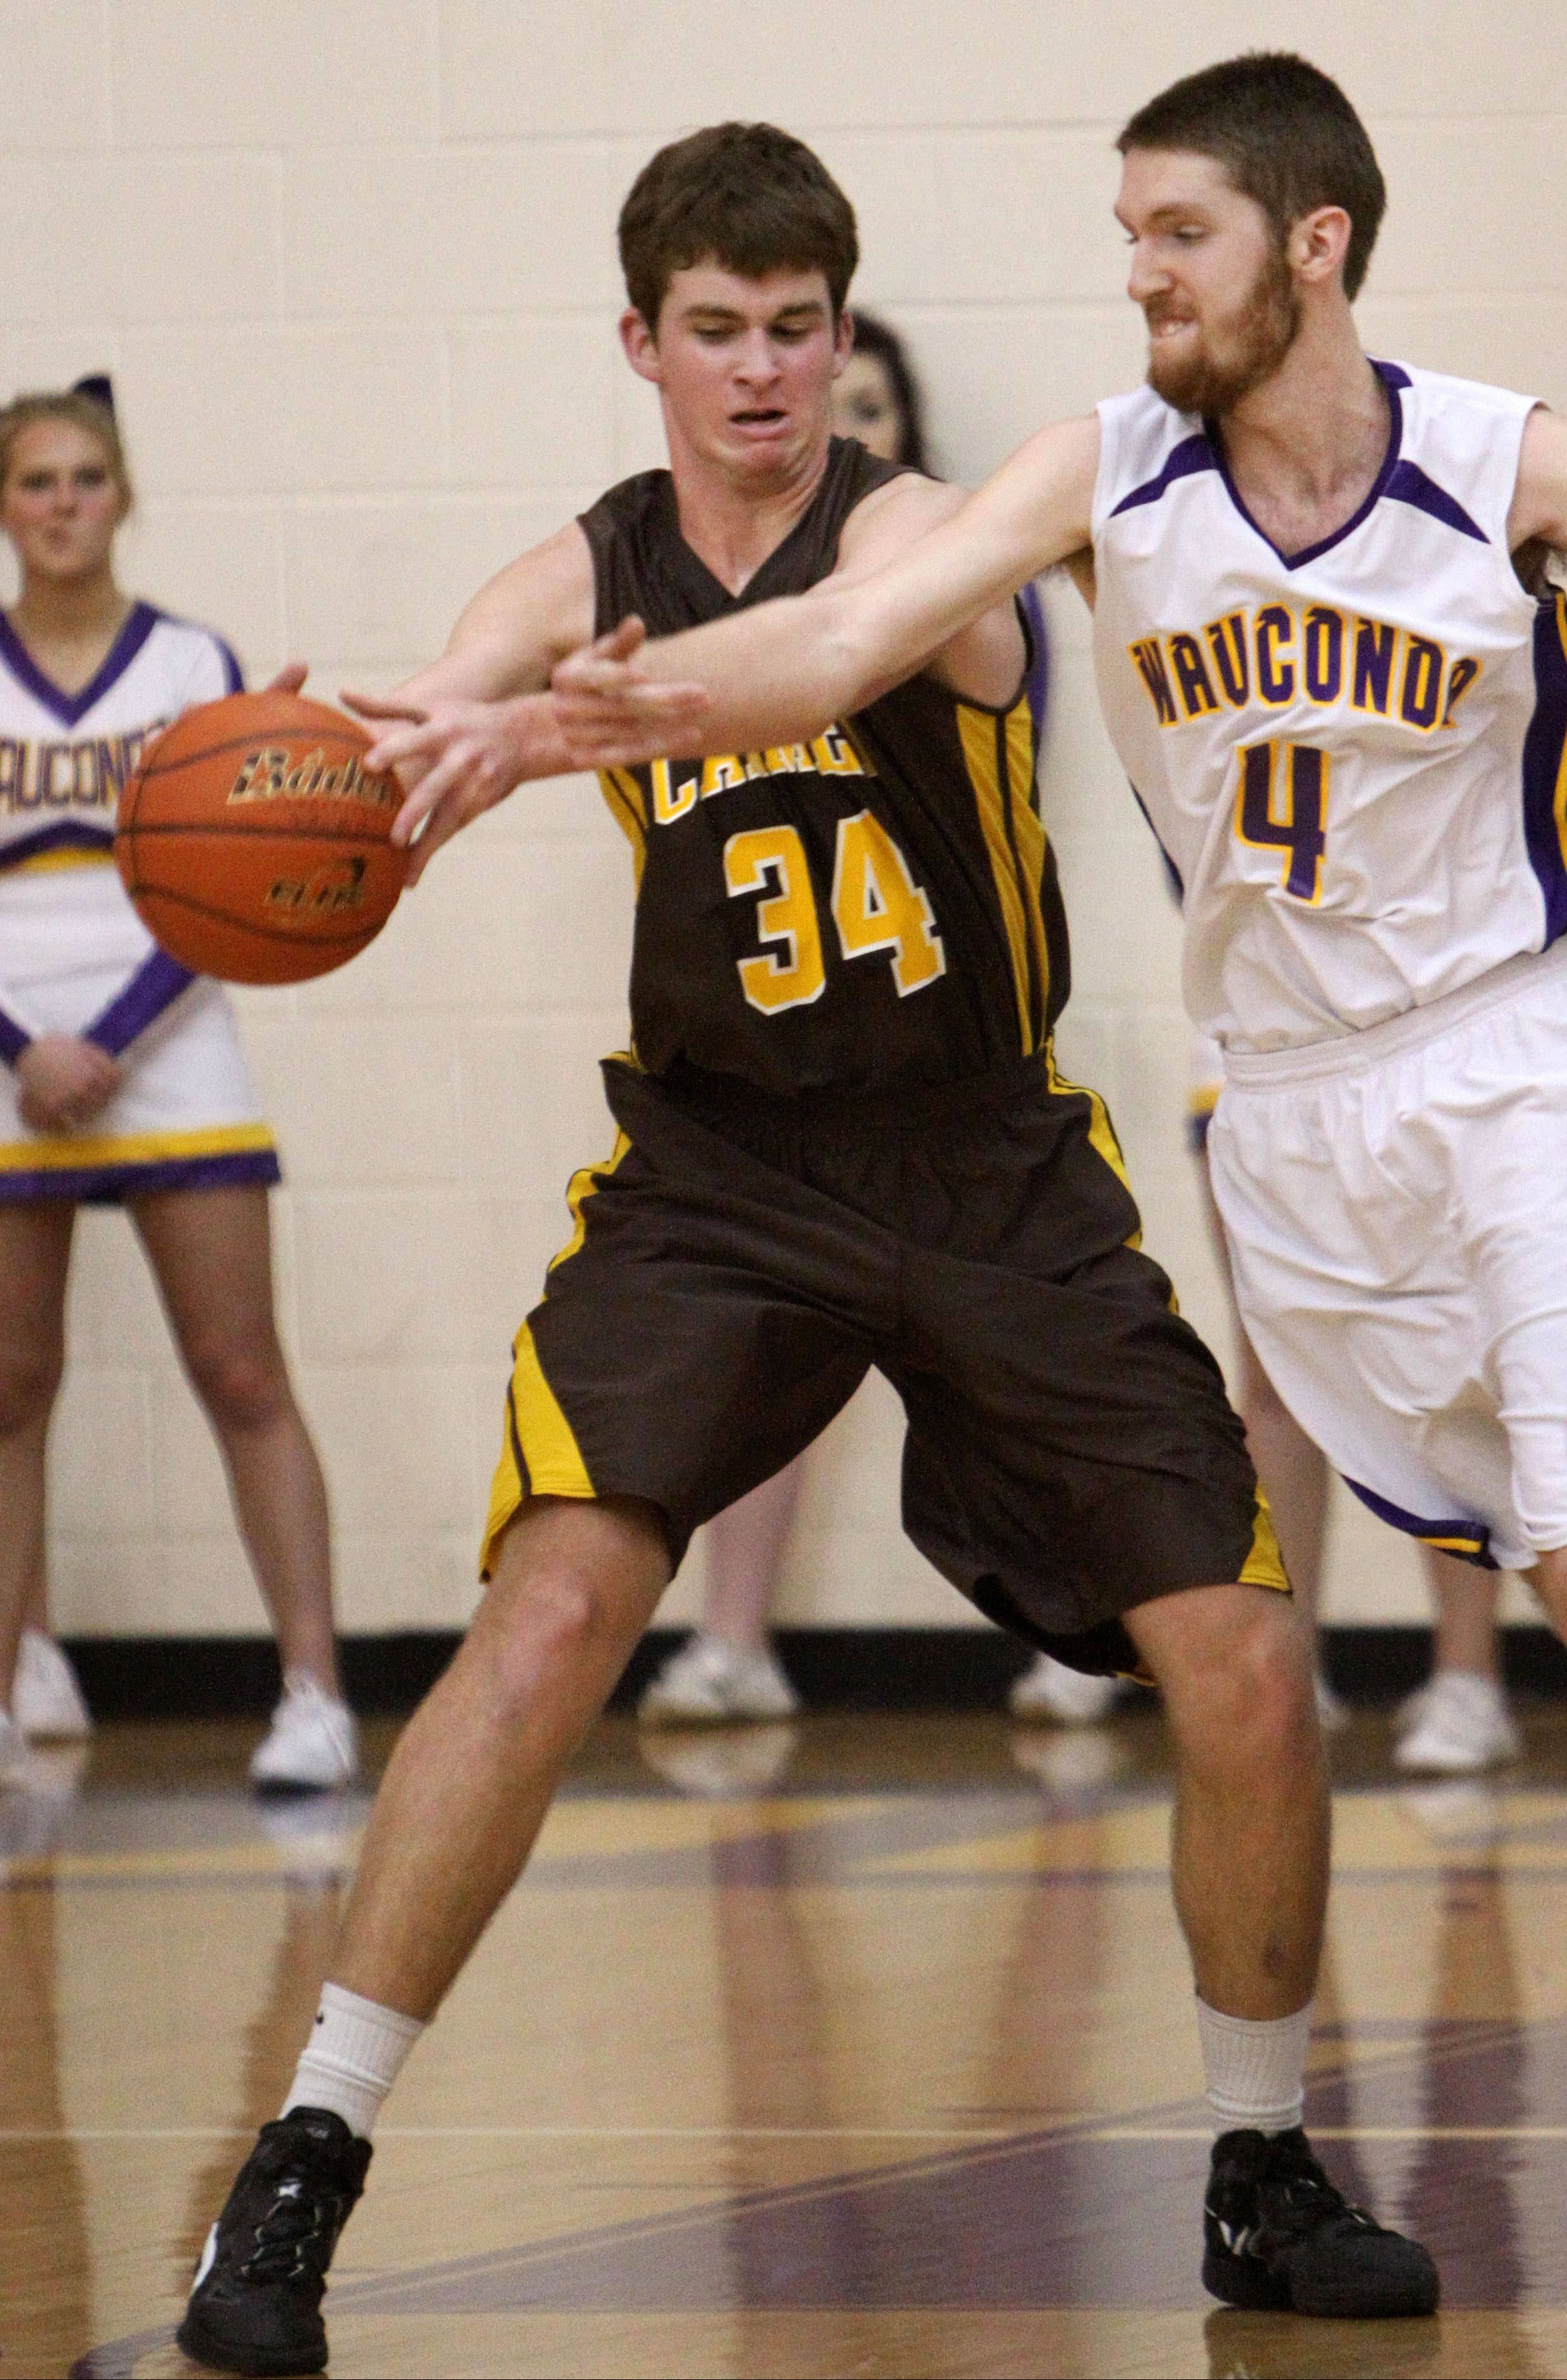 Carmel provides big trouble for Wauconda